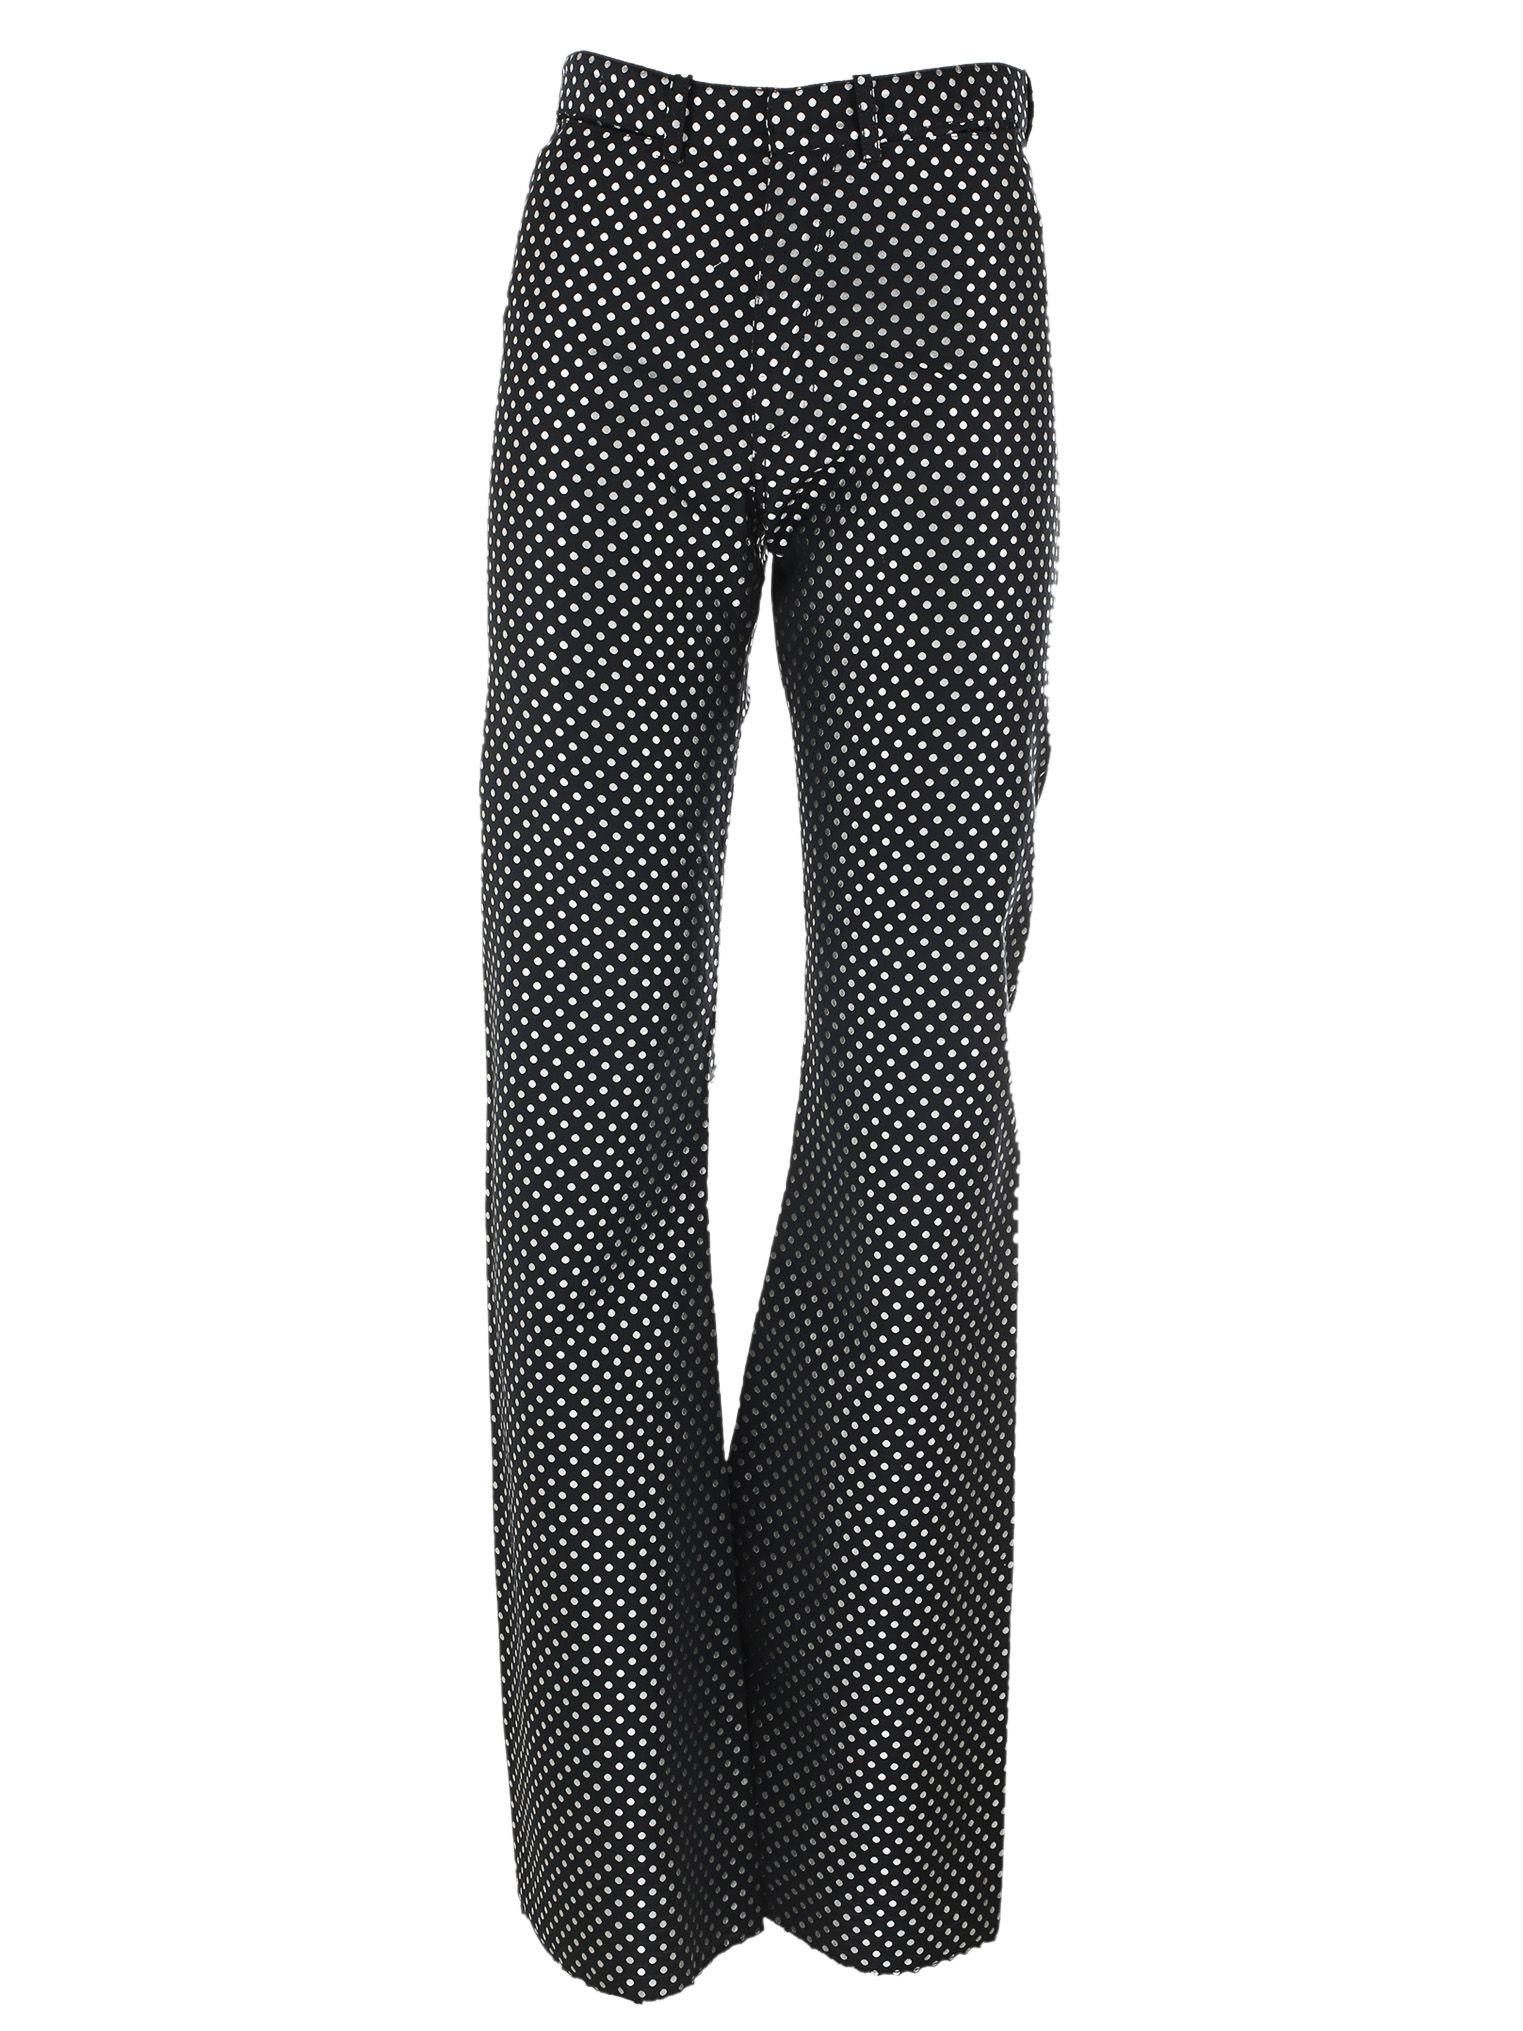 Polka Dots Pants ($ - $): 30 of items - Shop Polka Dots Pants from ALL your favorite stores & find HUGE SAVINGS up to 80% off Polka Dots Pants, including GREAT DEALS like MICHAEL Michael Kors Polka Dot Georgette Pants Blue 6 ($).